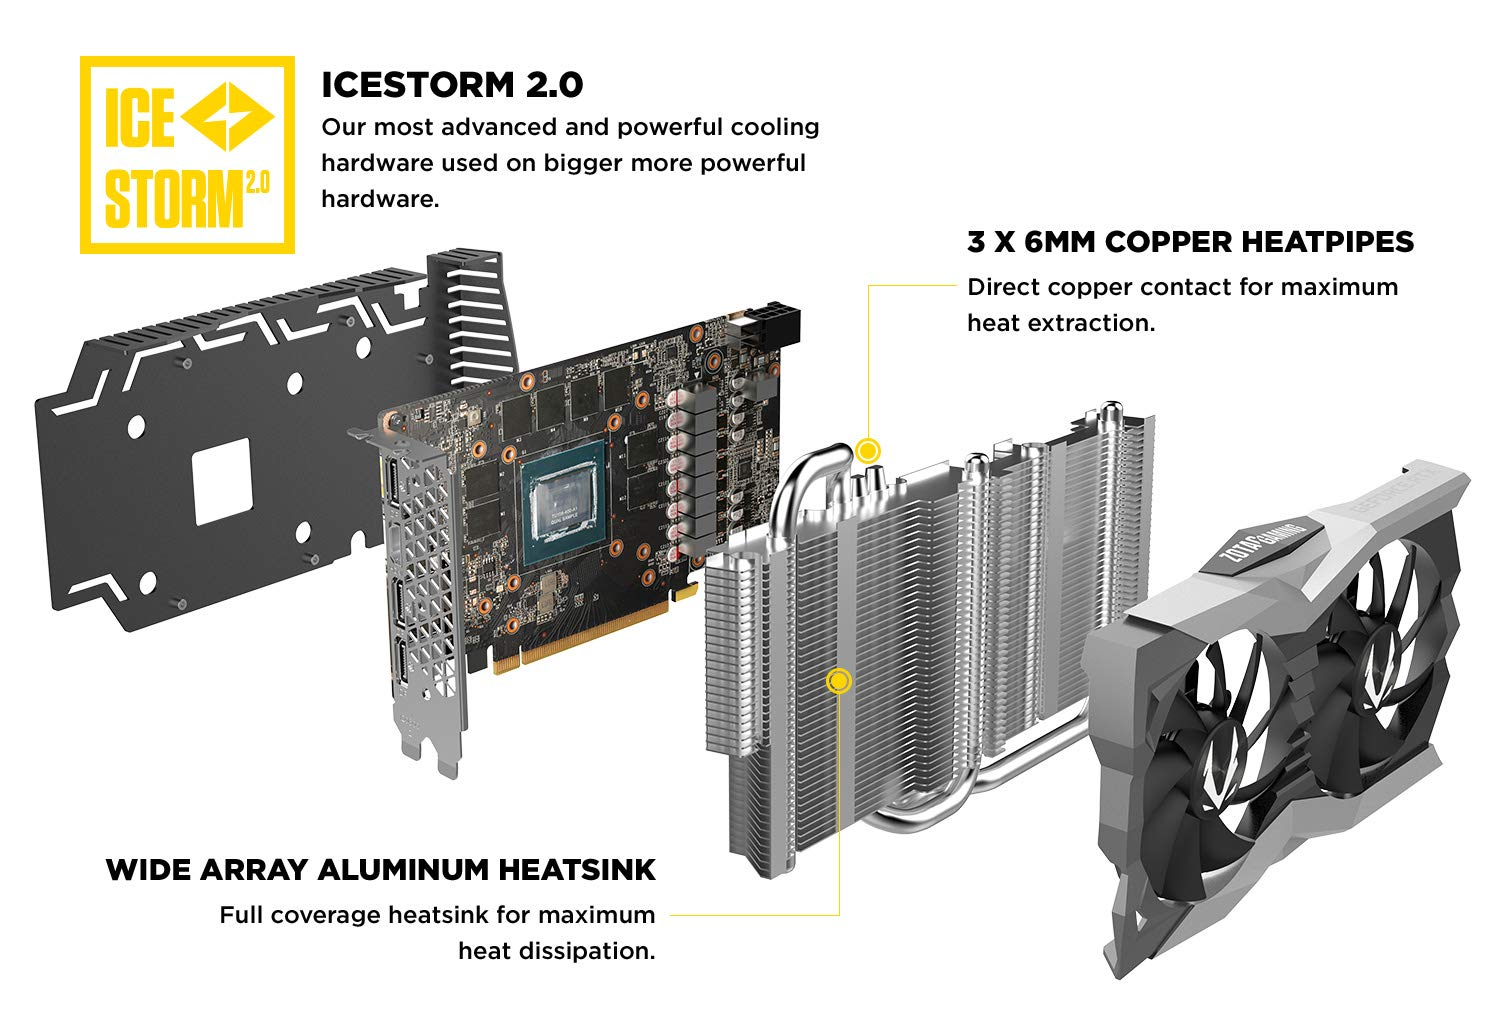 ZOTAC Gaming GeForce RTX 2060 Twin Fan 6GB GDDR6 192-bit Gaming Graphics Card, Super Compact, IceStorm 2.0, ZT-T20600F-10M by ZOTAC (Image #3)